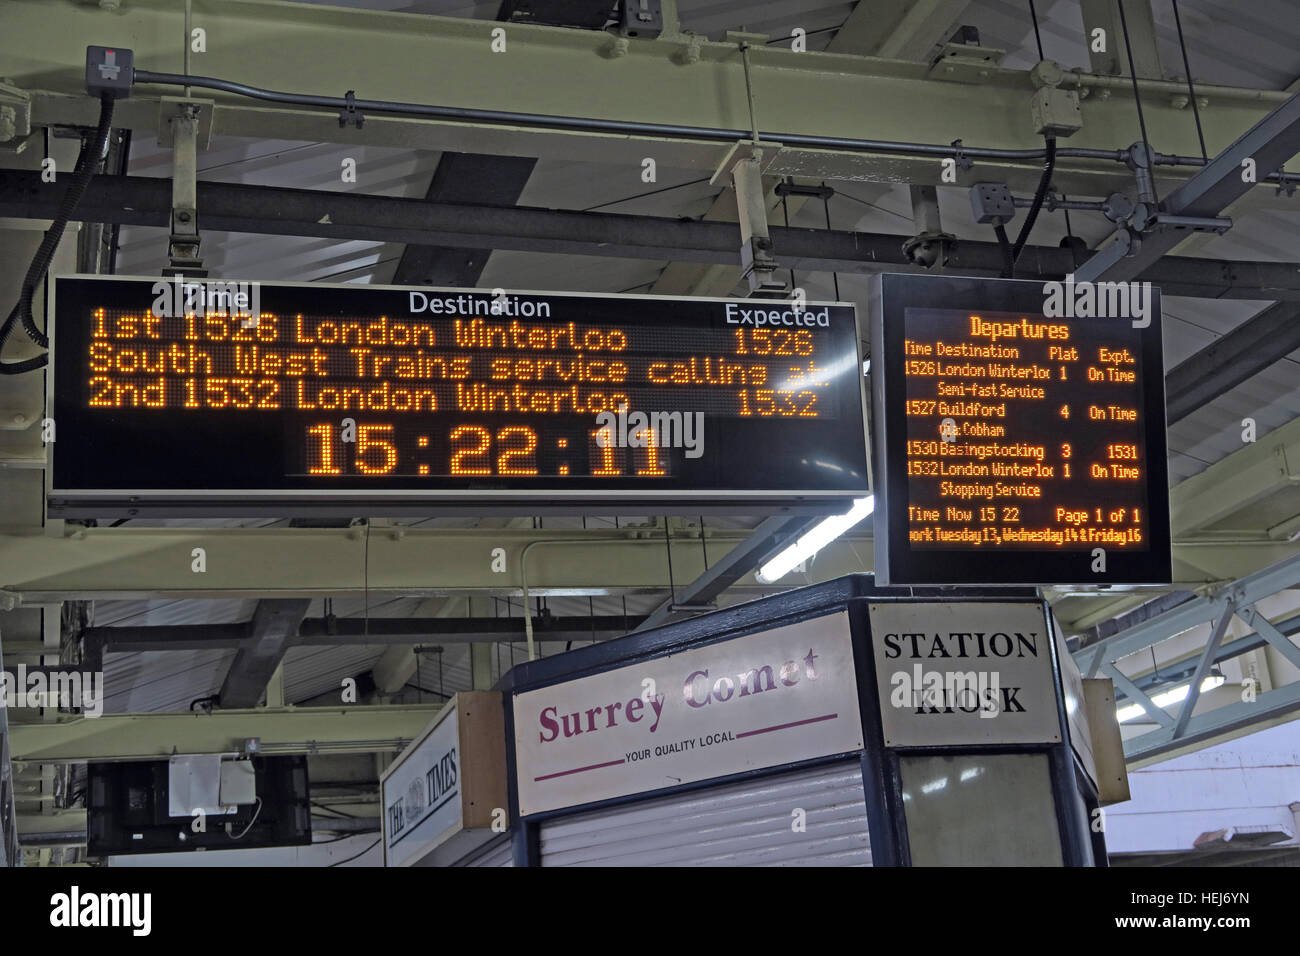 LDN,Comedy,South West Trains,TOC,Stagecoach,railway,BR,display,British Railways,Clapham Jingle Bells,Clapham Junction,Winterloo,Waterloo,Jingle Bells,UK,GB,fun,Train Operating Company,station,platform,GoTonySmith,@HotpixUK,Tony,Smith,UK,GB,Great,Britain,United,Kingdom,English,British,England,London,Greater,problem,with,problem with,issue with,LDN,City,Centre,cities,Urban,Urbanist,town,infrastructure,transport,tour,tourism,tourists,urban,attraction,attractions,Buy Pictures of,Buy Images Of,Images of,Stock Images,Tony Smith,United Kingdom,Great Britain,Greater London,British Isles,City Centre